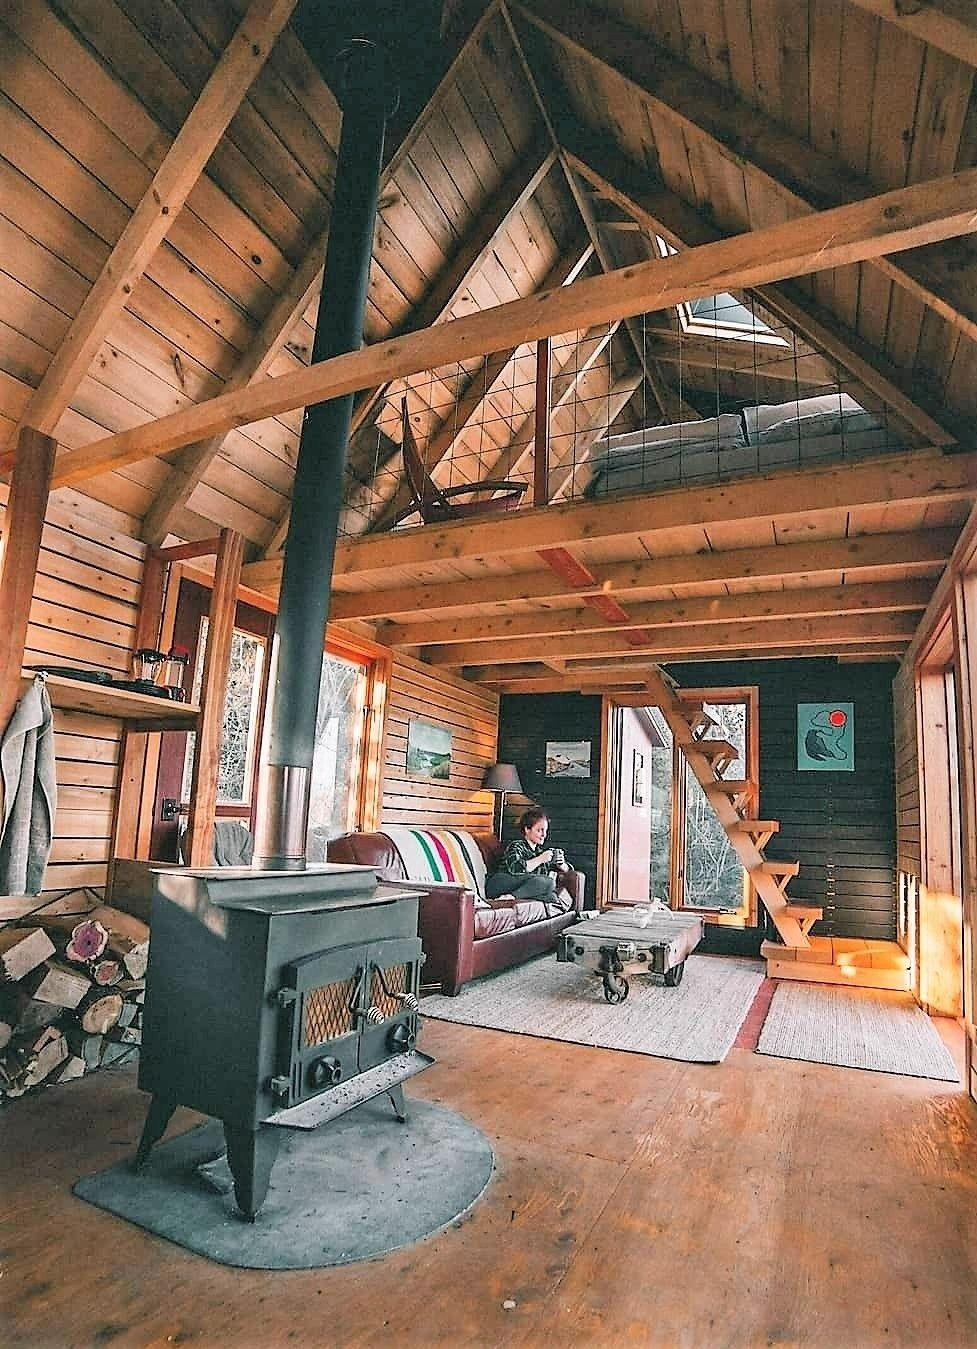 60 small mountain cabin plans with loft inspirational pin by mark armen on the soul nurtured spaces an in 2020 cabin plans with loft tiny house design tiny house cabin 60 small mountain cabin plans with loft